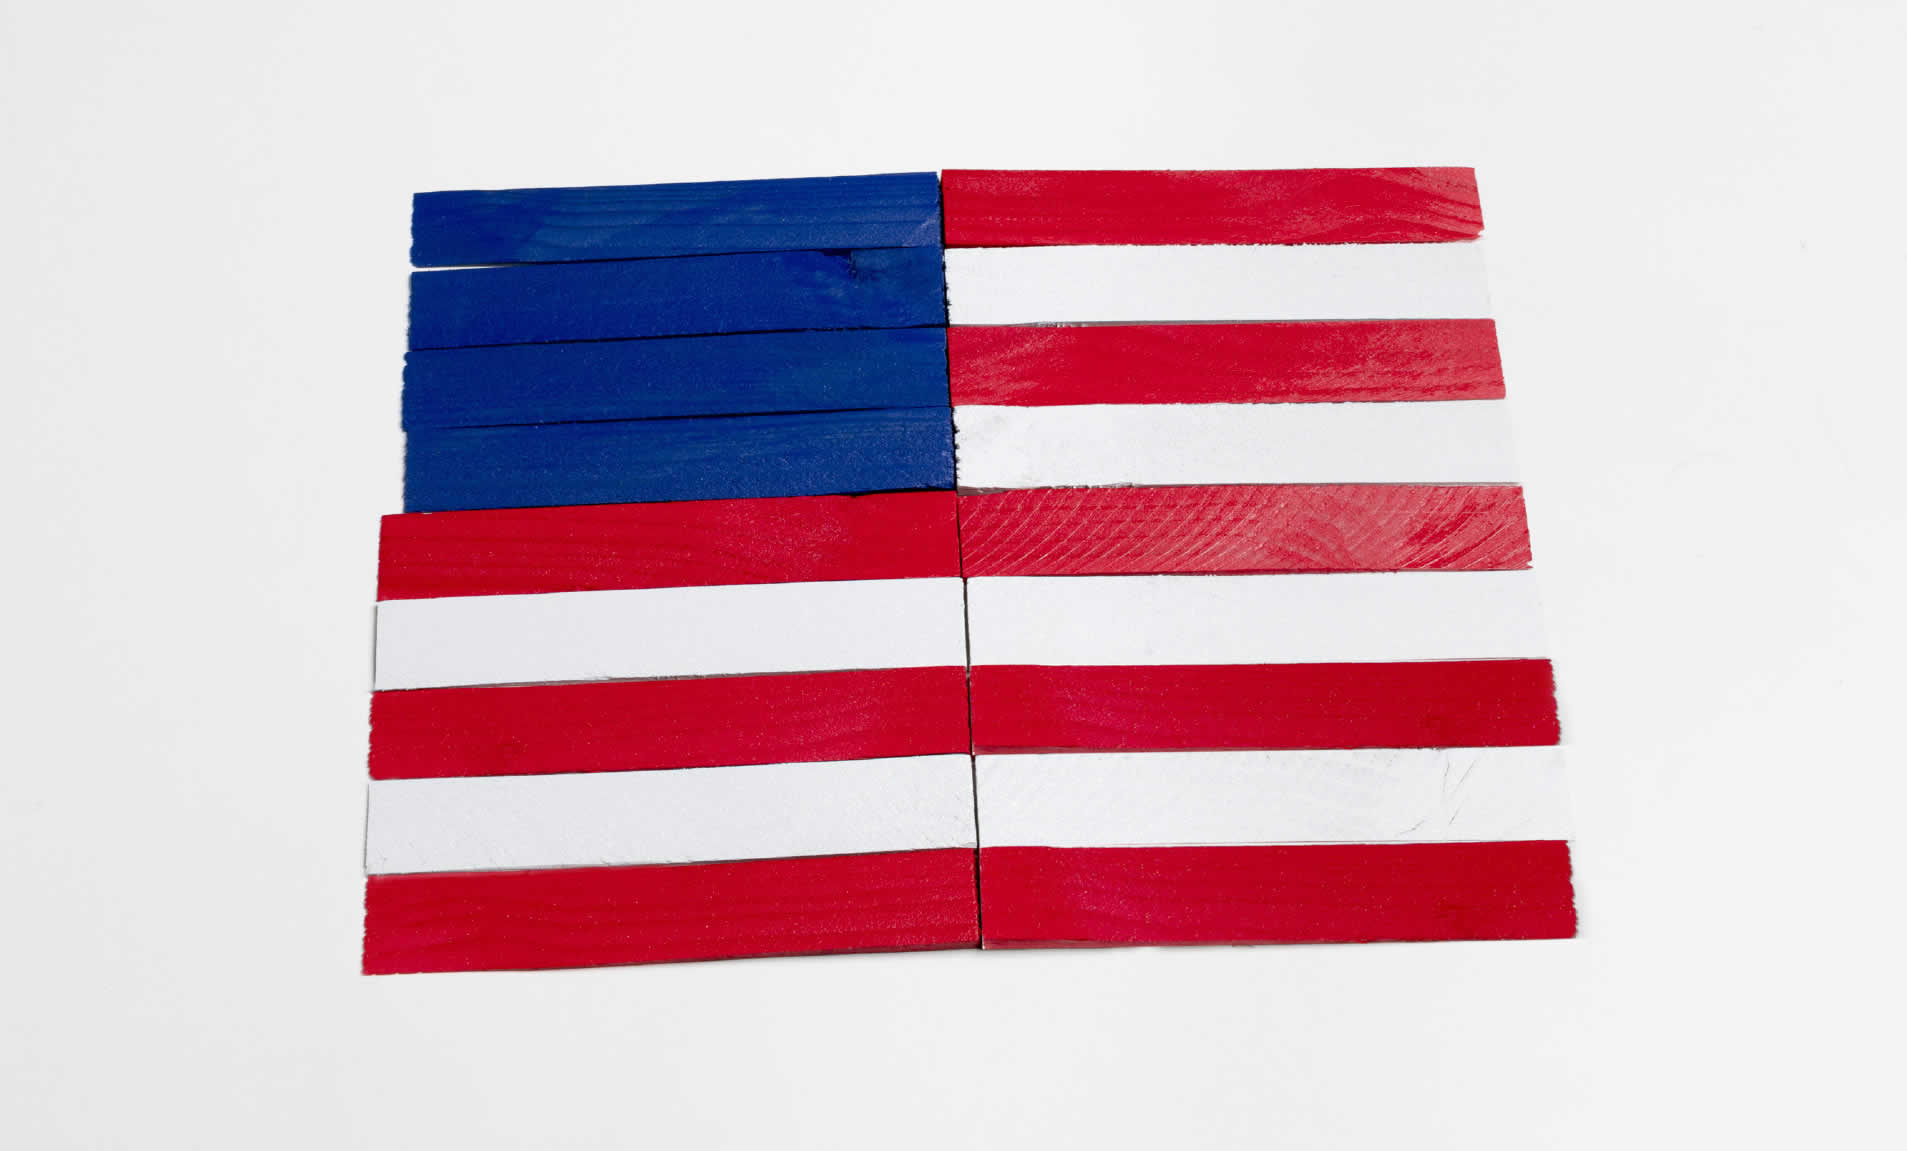 diy patriotic flag crafting